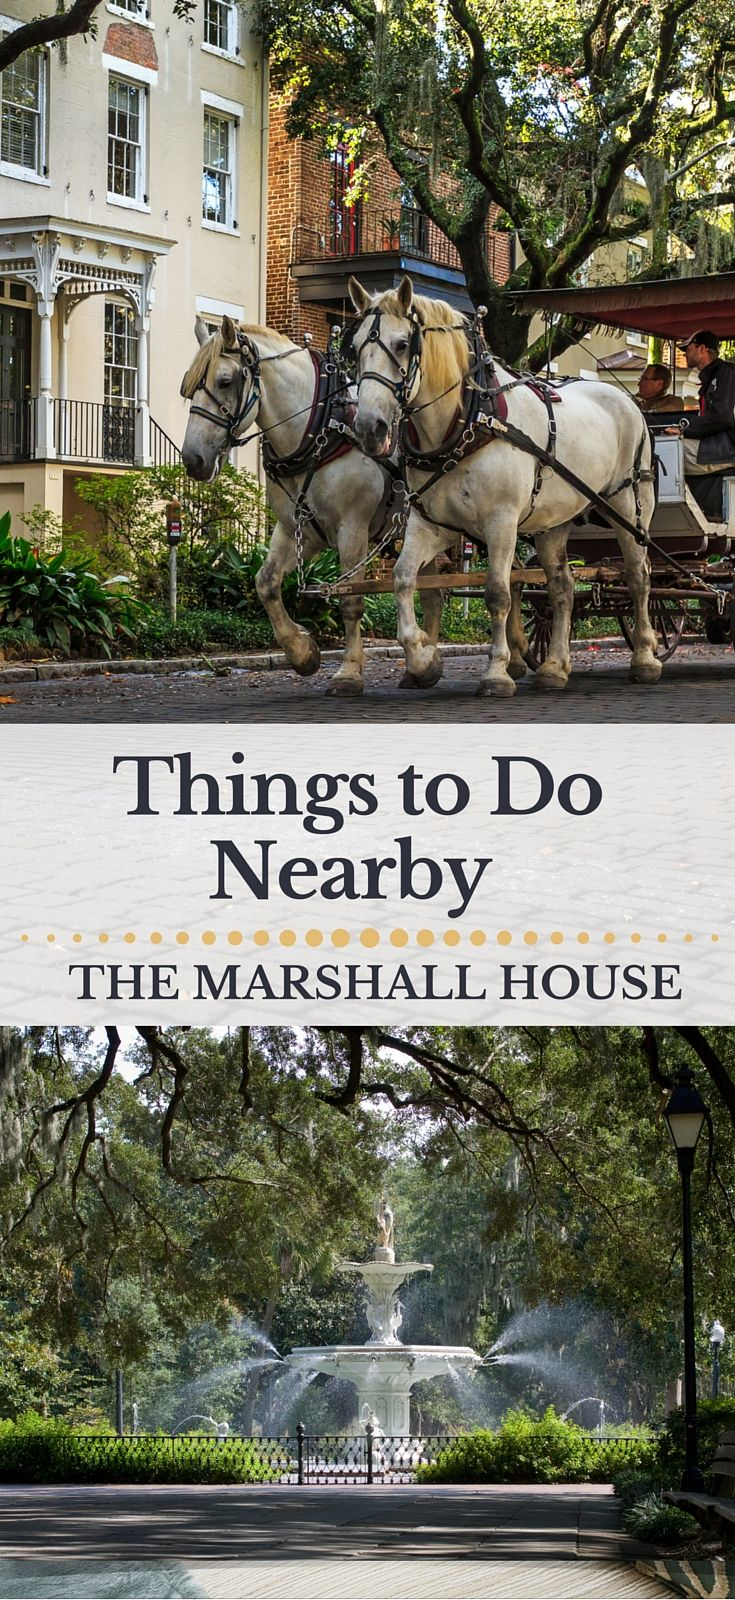 The Marshall House is located on Broughton Street, amid shopping, dining and lots of sites to see.  View our summary of things to do while staying at The Marshall House and get a plan for your visit. http://www.marshallhouse.com/area-guide.htm